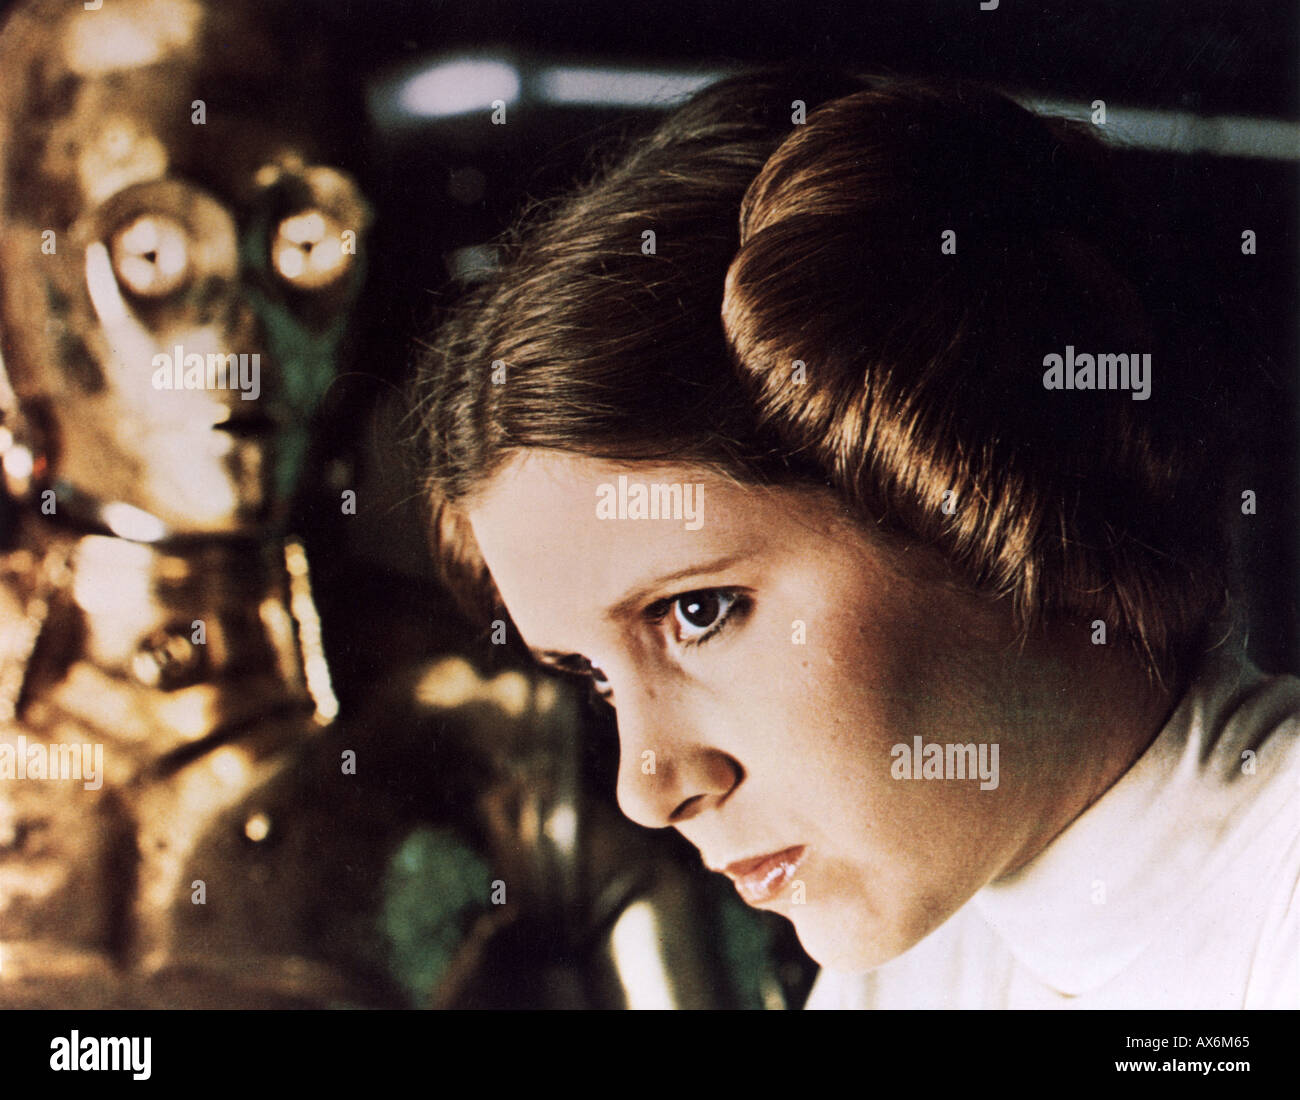 1977 TCF/Lucas film starring Carrie Fisher as Princess Leia Organa here with See Threepio played by Anthony Daniels - Stock Image